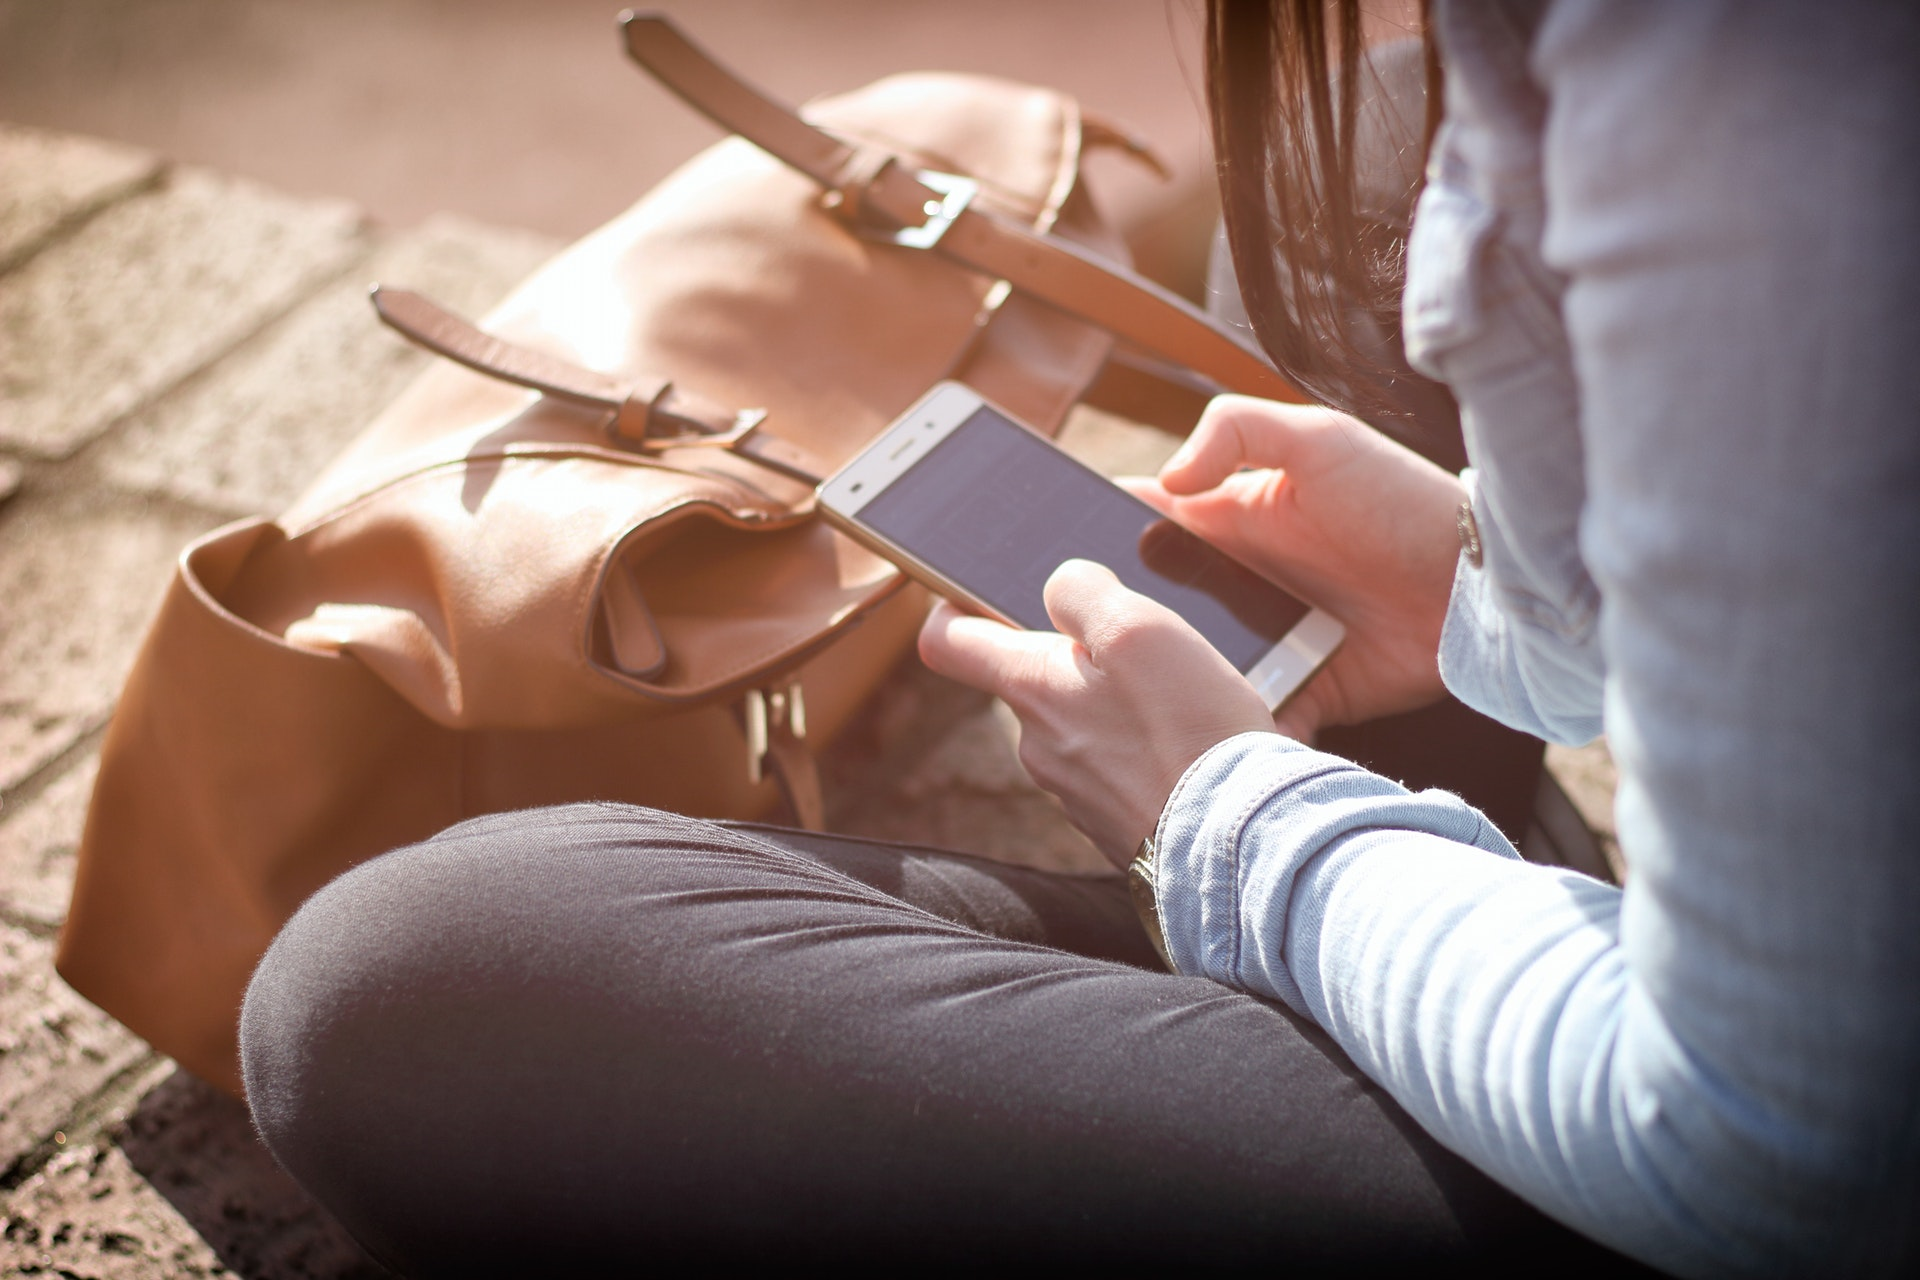 Smartphones: Blessing or a Curse?